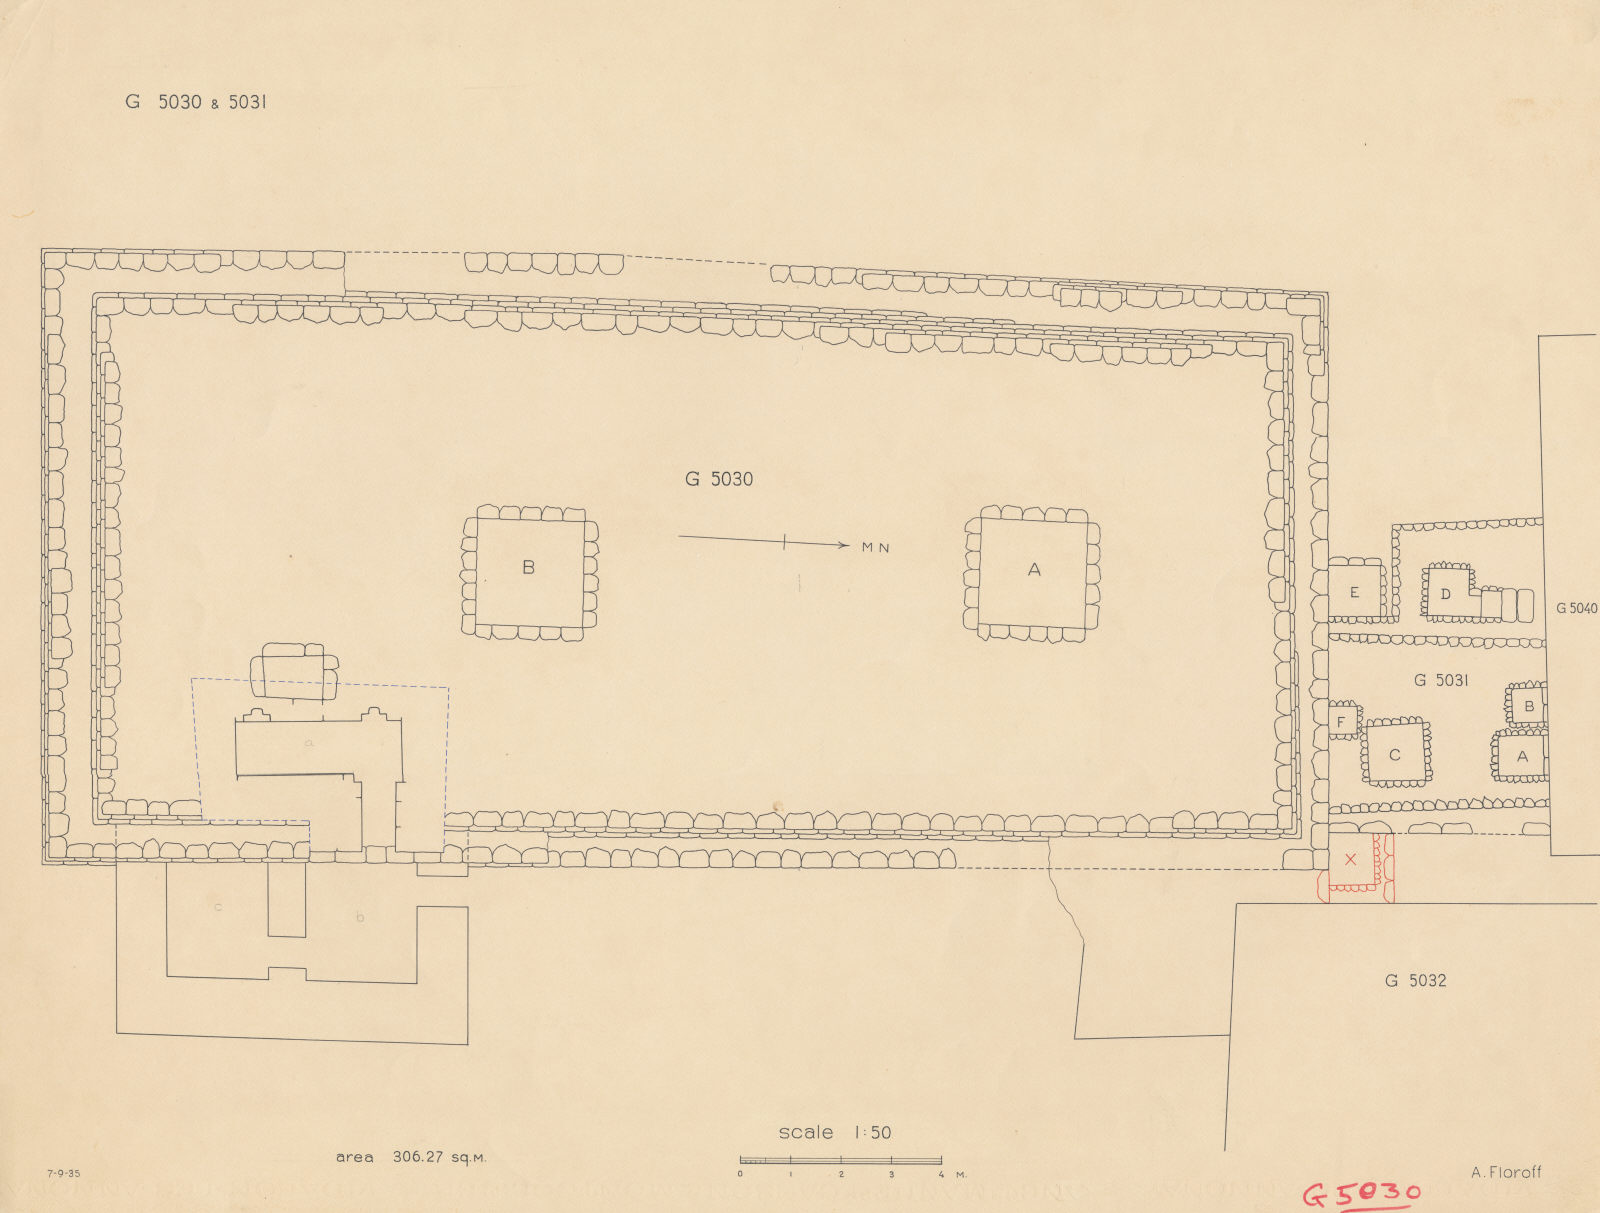 Maps and plans: Plan of G 5030, with position of G 5031, G 5032, G 5040